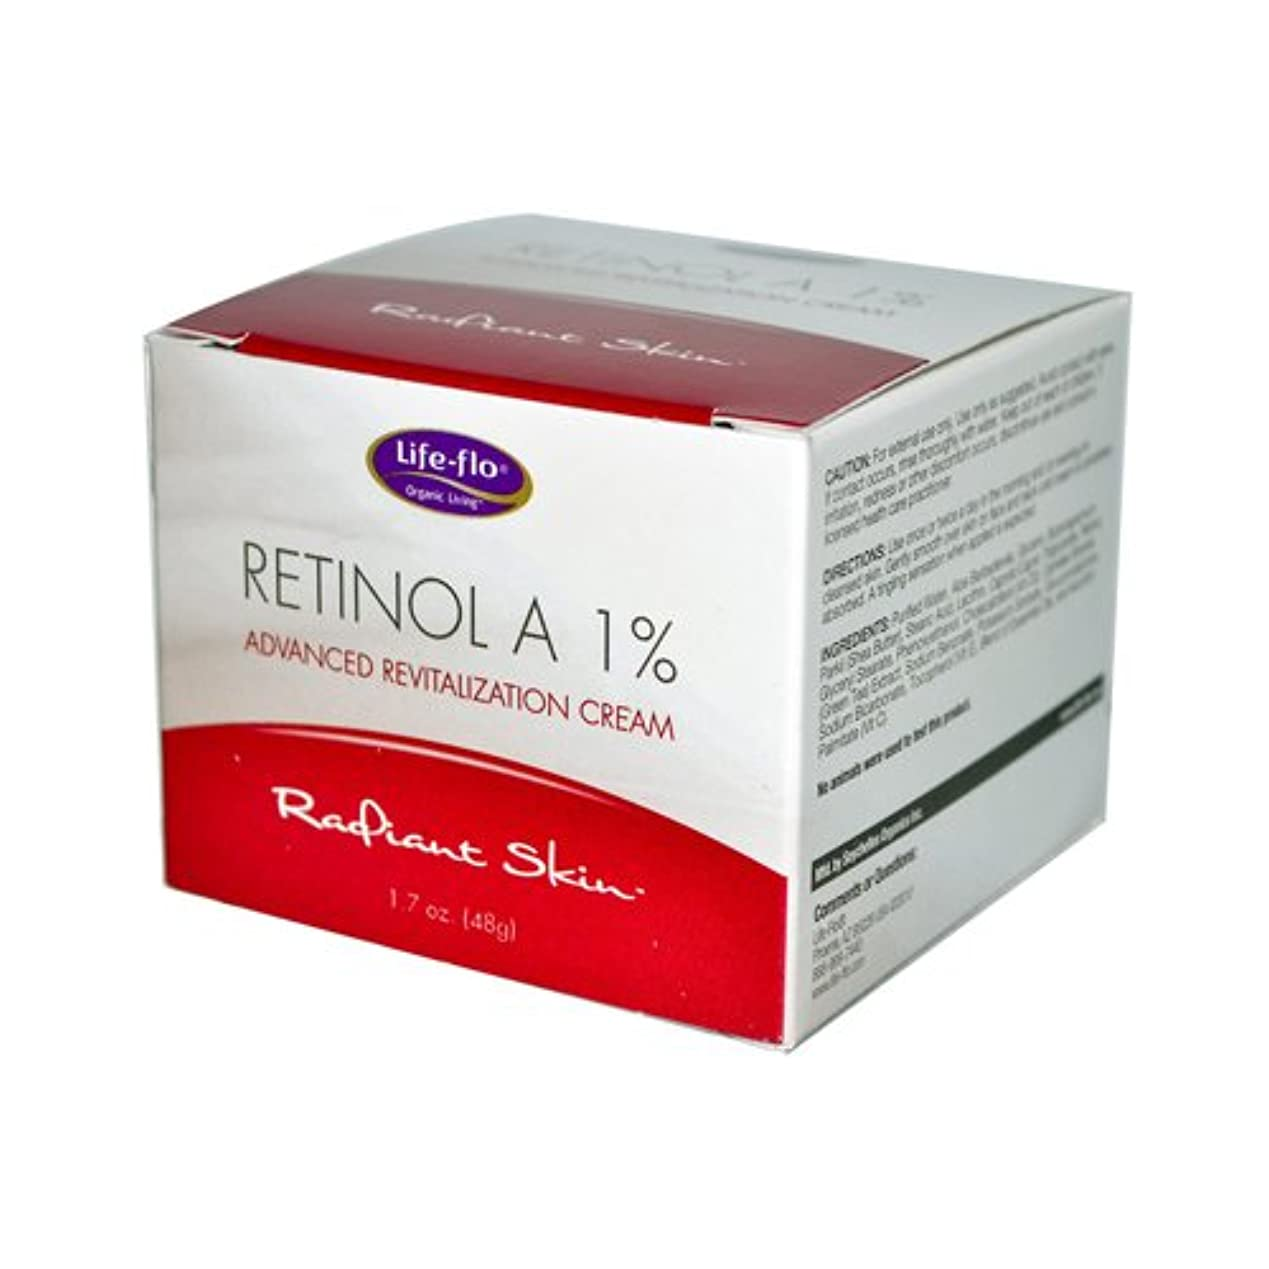 敬な住所薄暗い海外直送品 Life-Flo Retinol A 1% Advanced Revitalization Cream, 1.7 oz